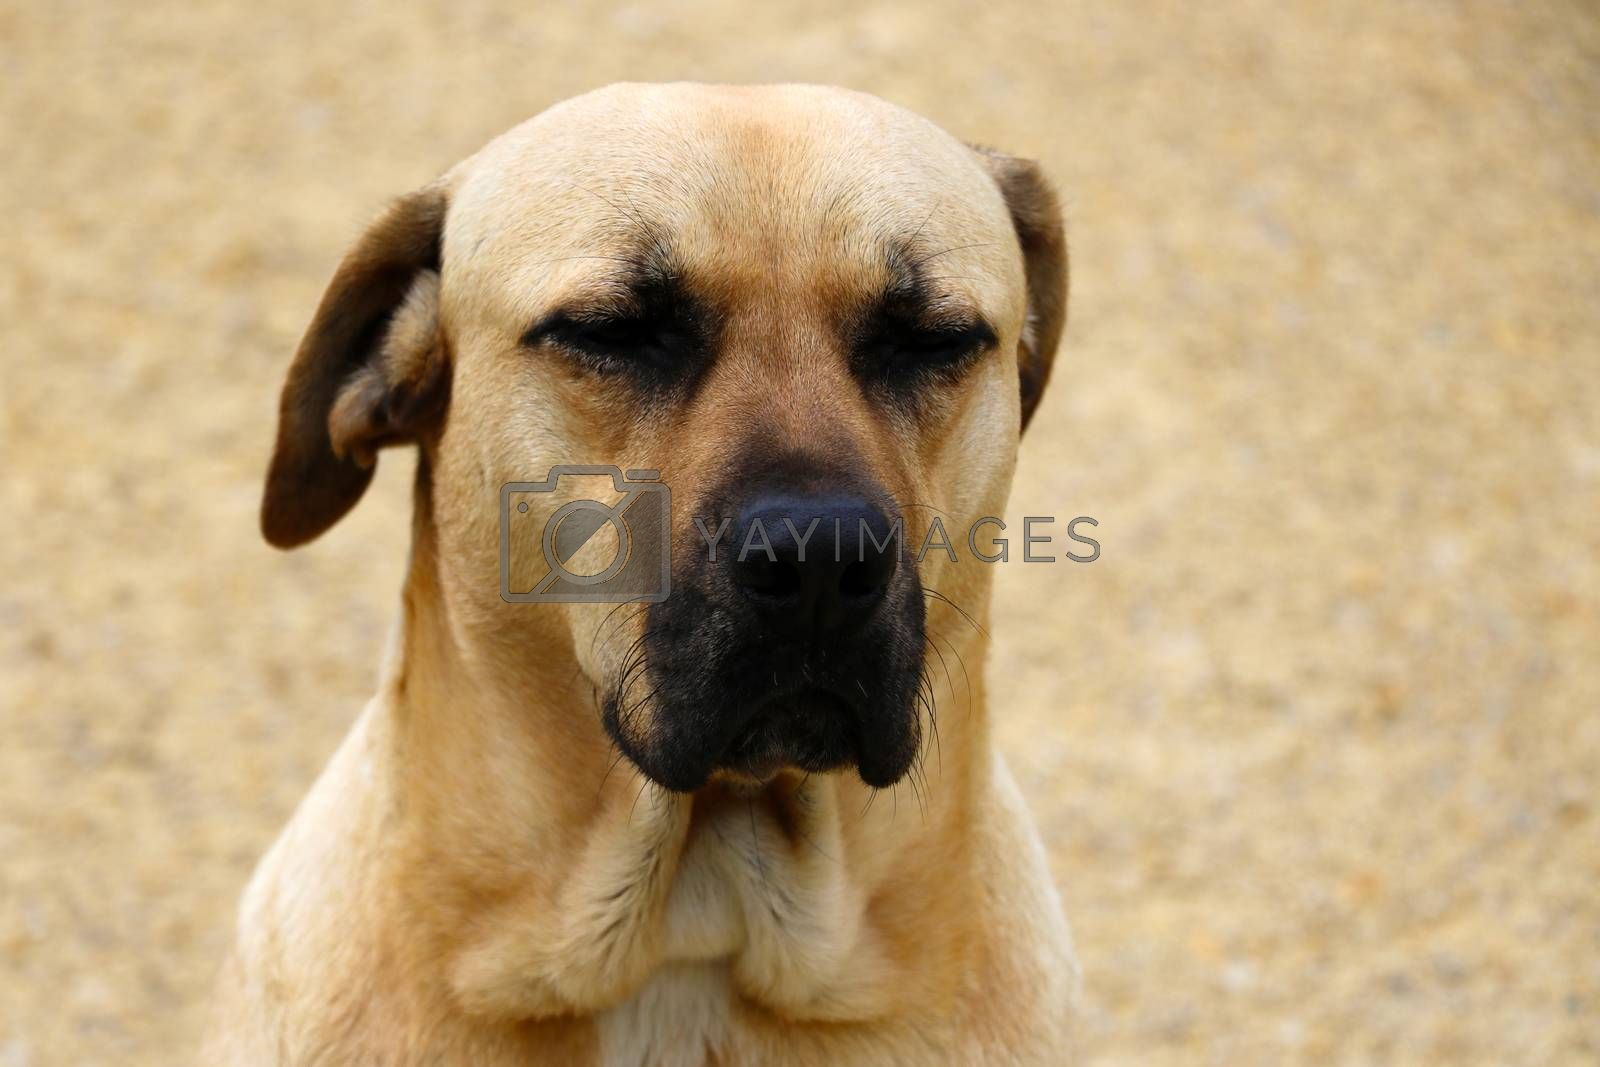 A large large light-colored dog sits with closed eyes